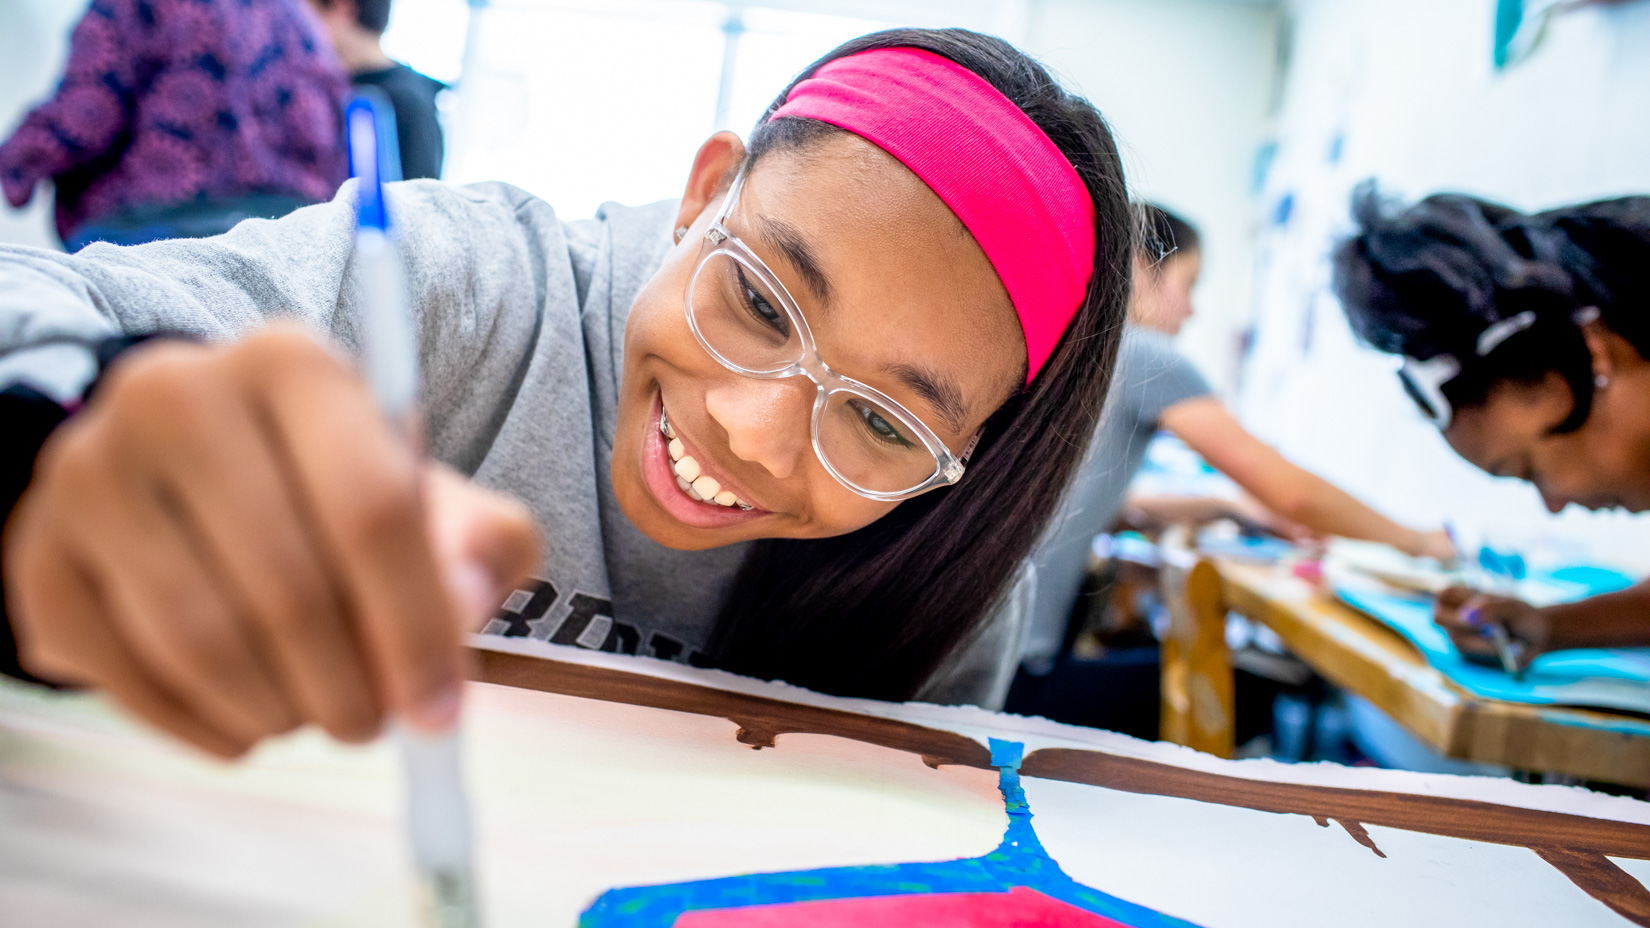 A student smiling while drawing a picture.